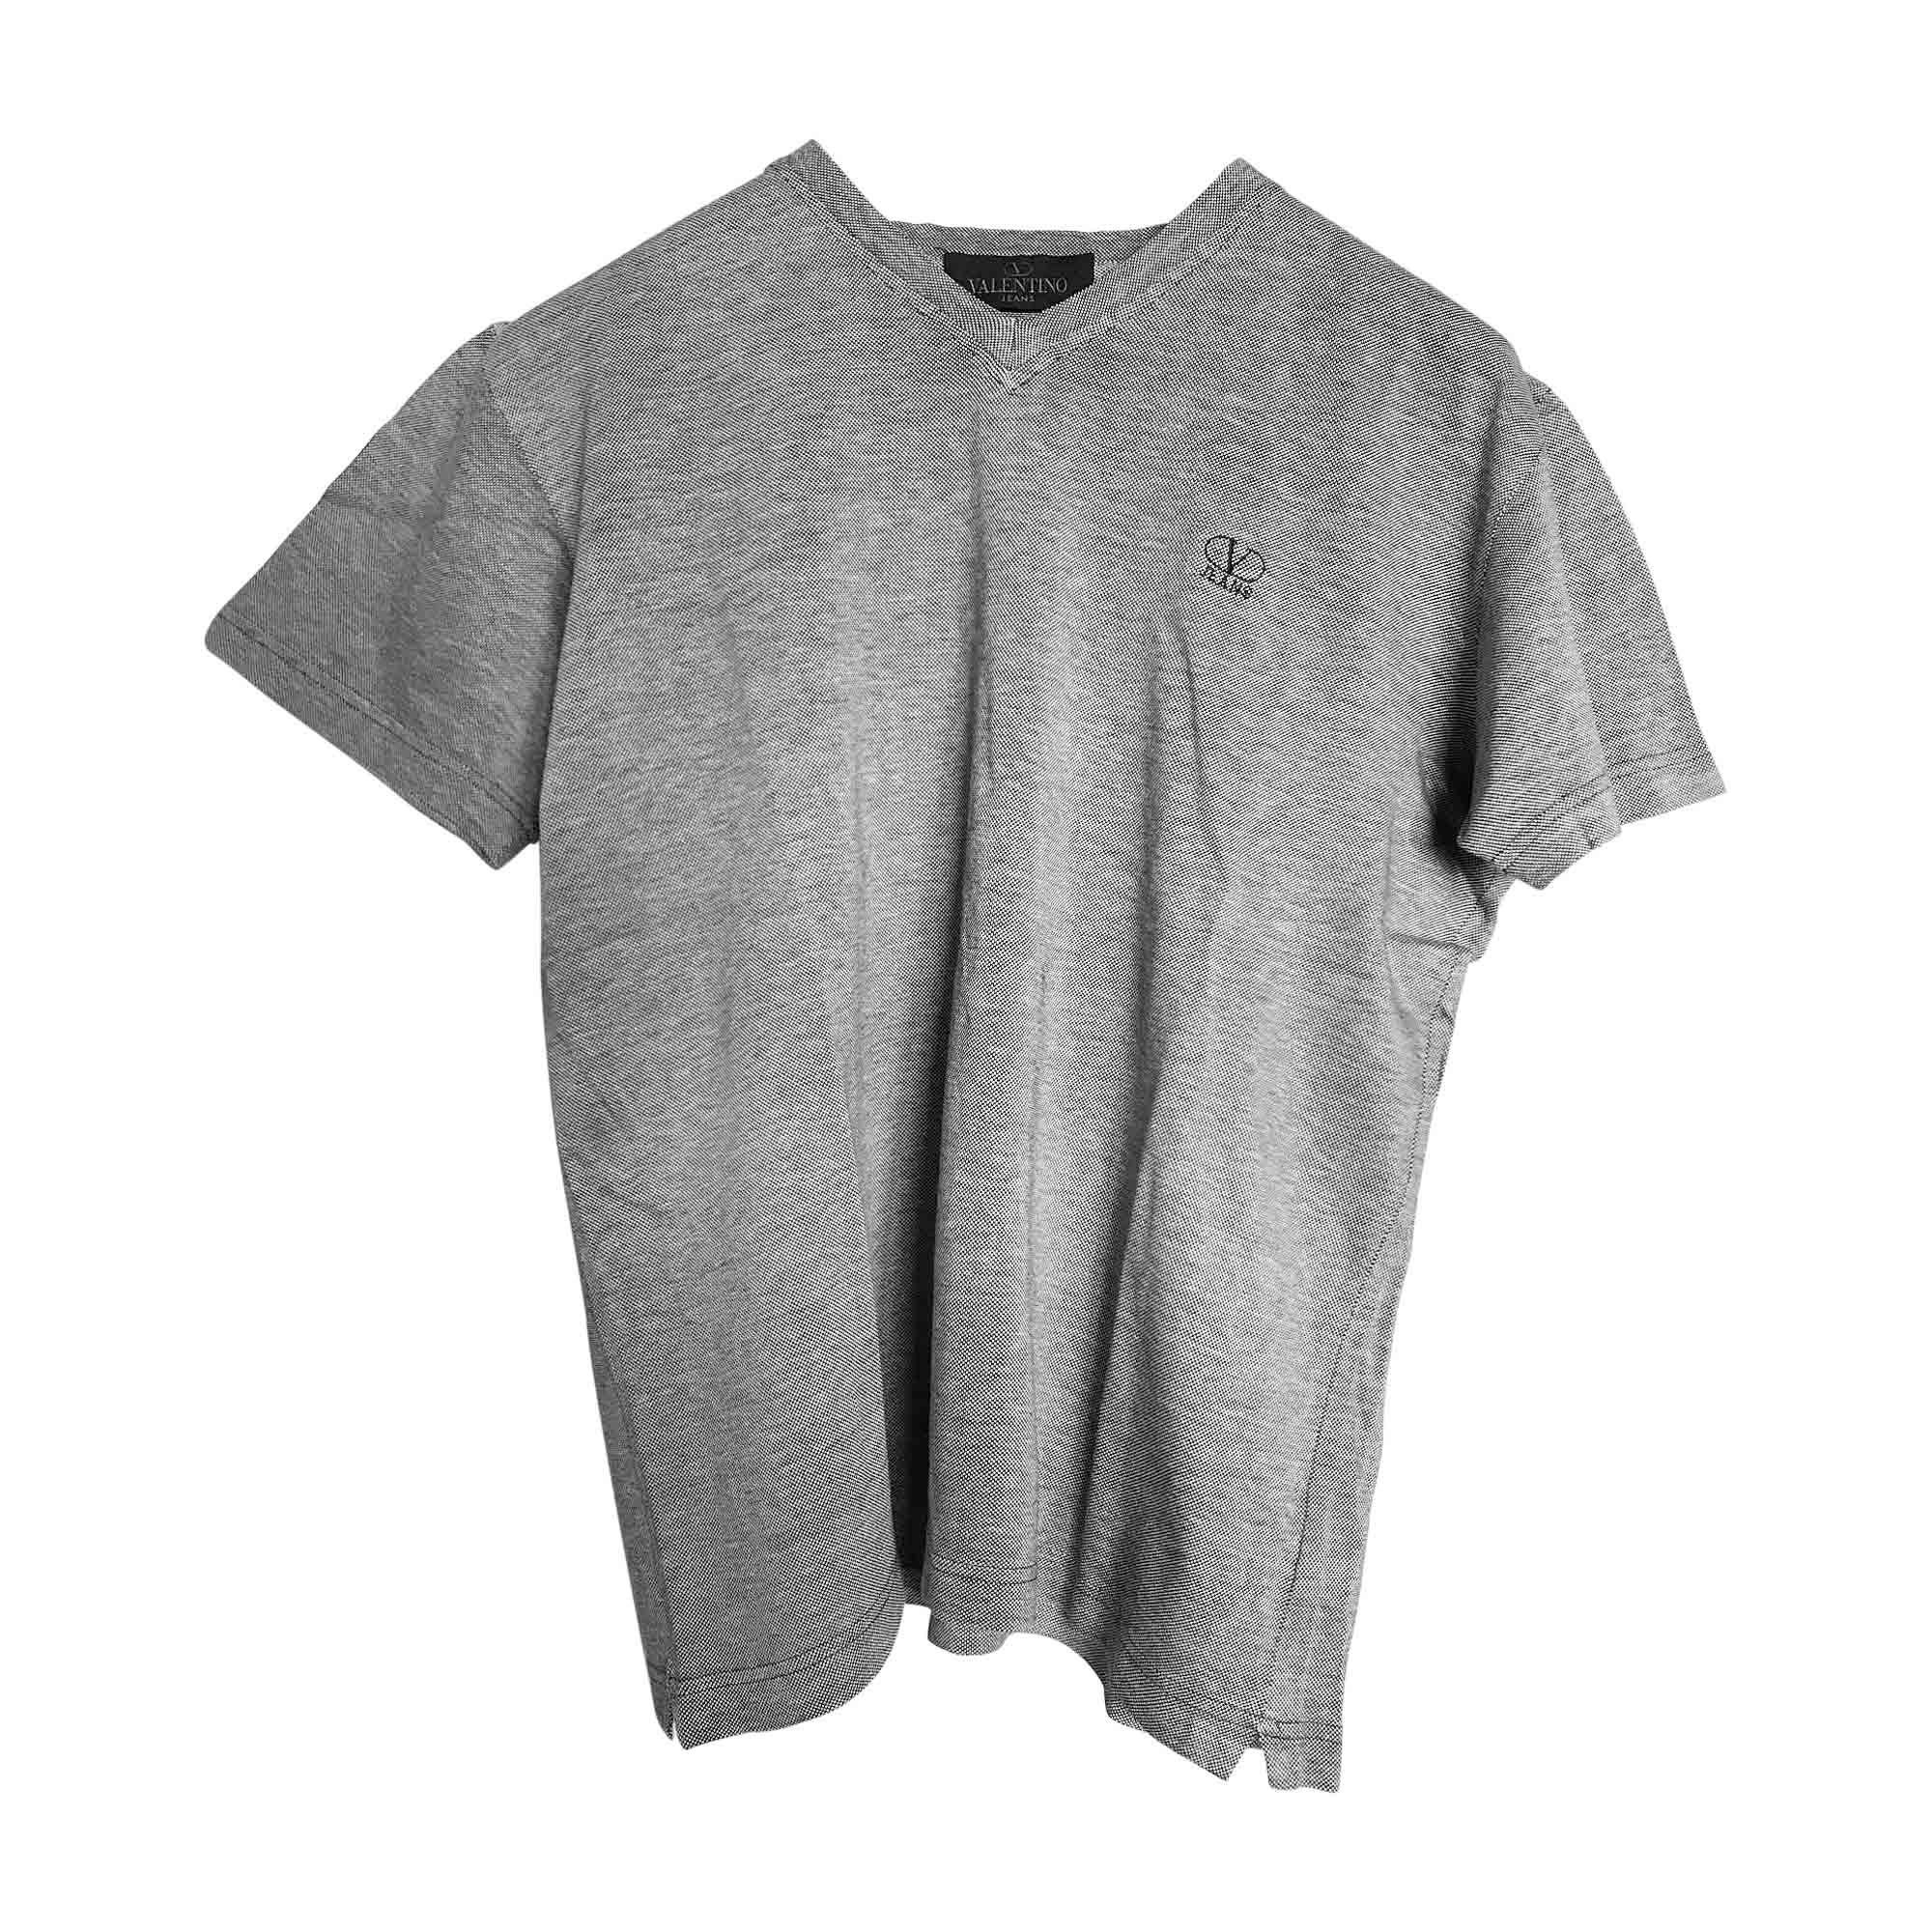 T-shirt VALENTINO Gray, charcoal